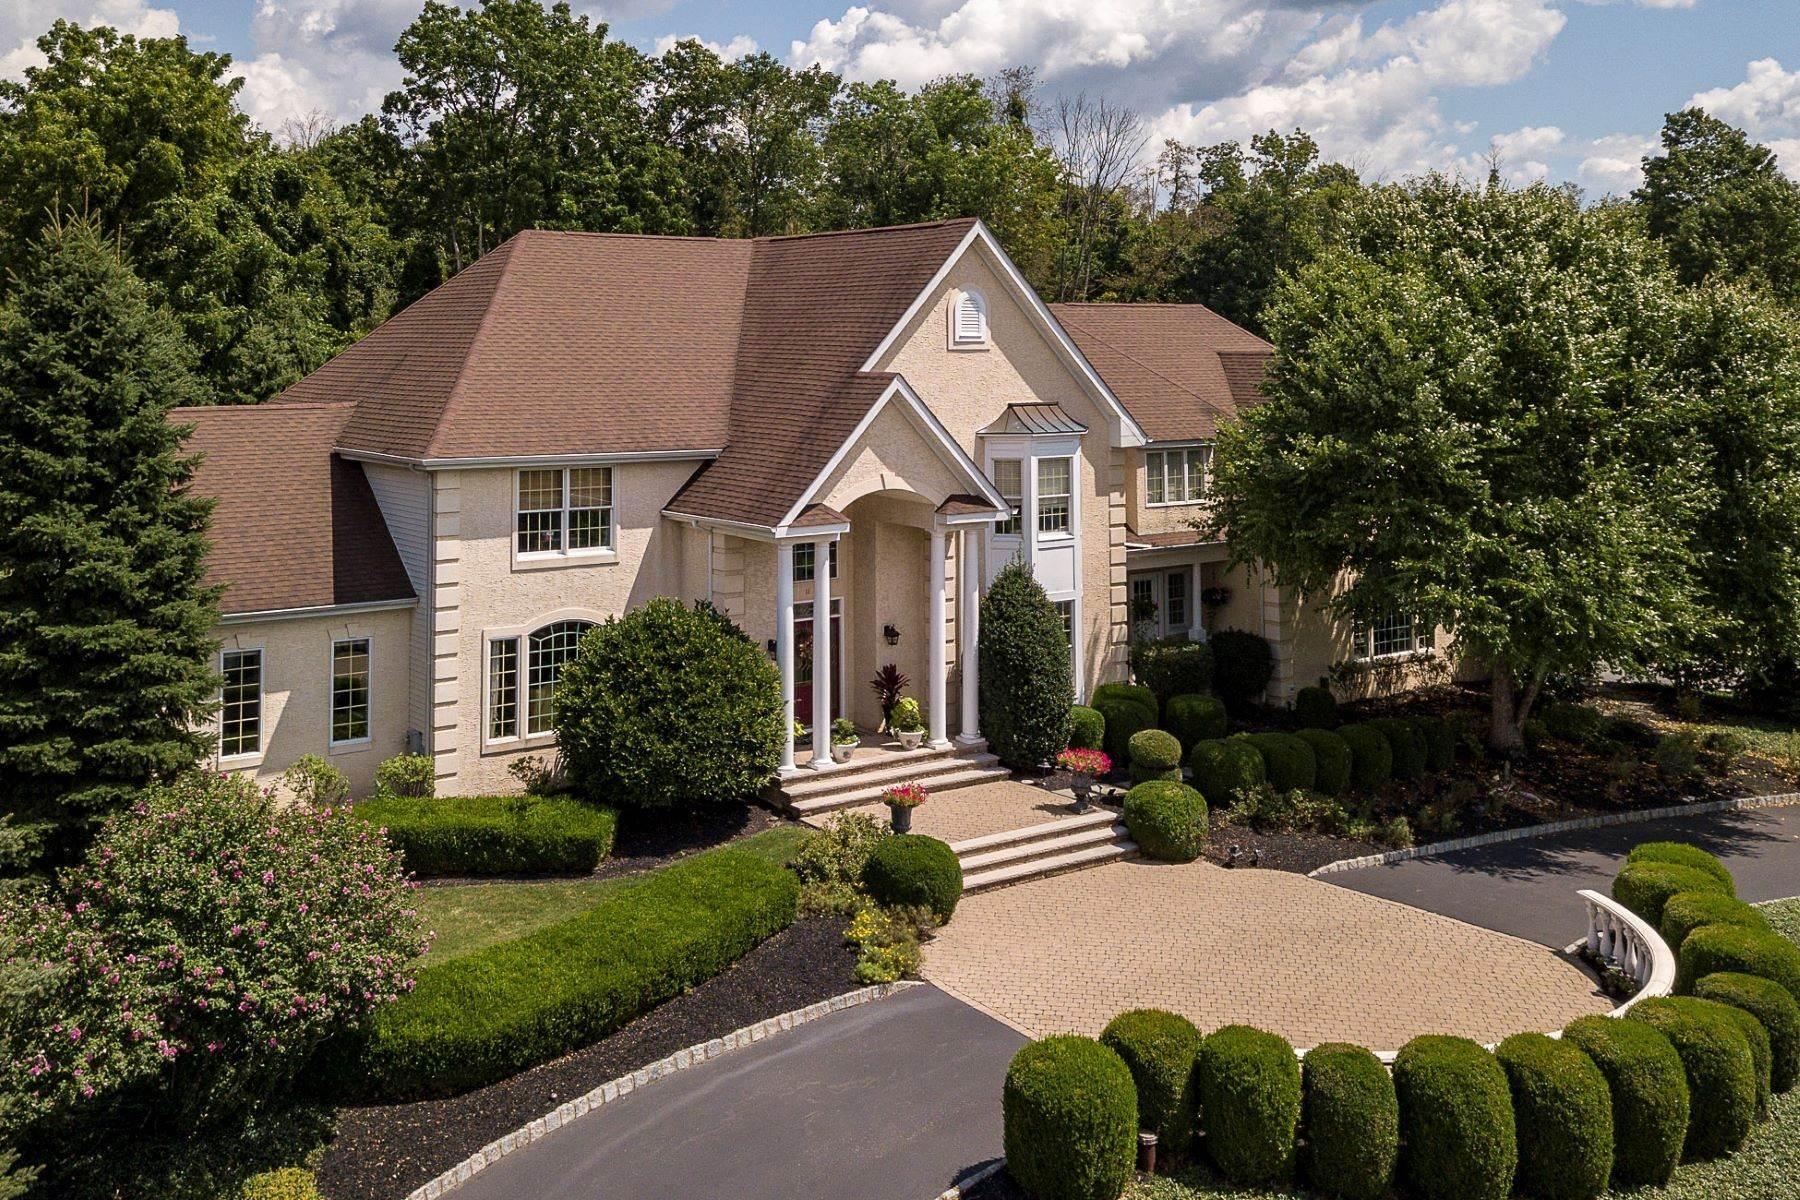 Single Family Homes for Sale at Spectacular Home For The Luxury Buyer 11 Turtle Court, Flemington, New Jersey 08822 United States